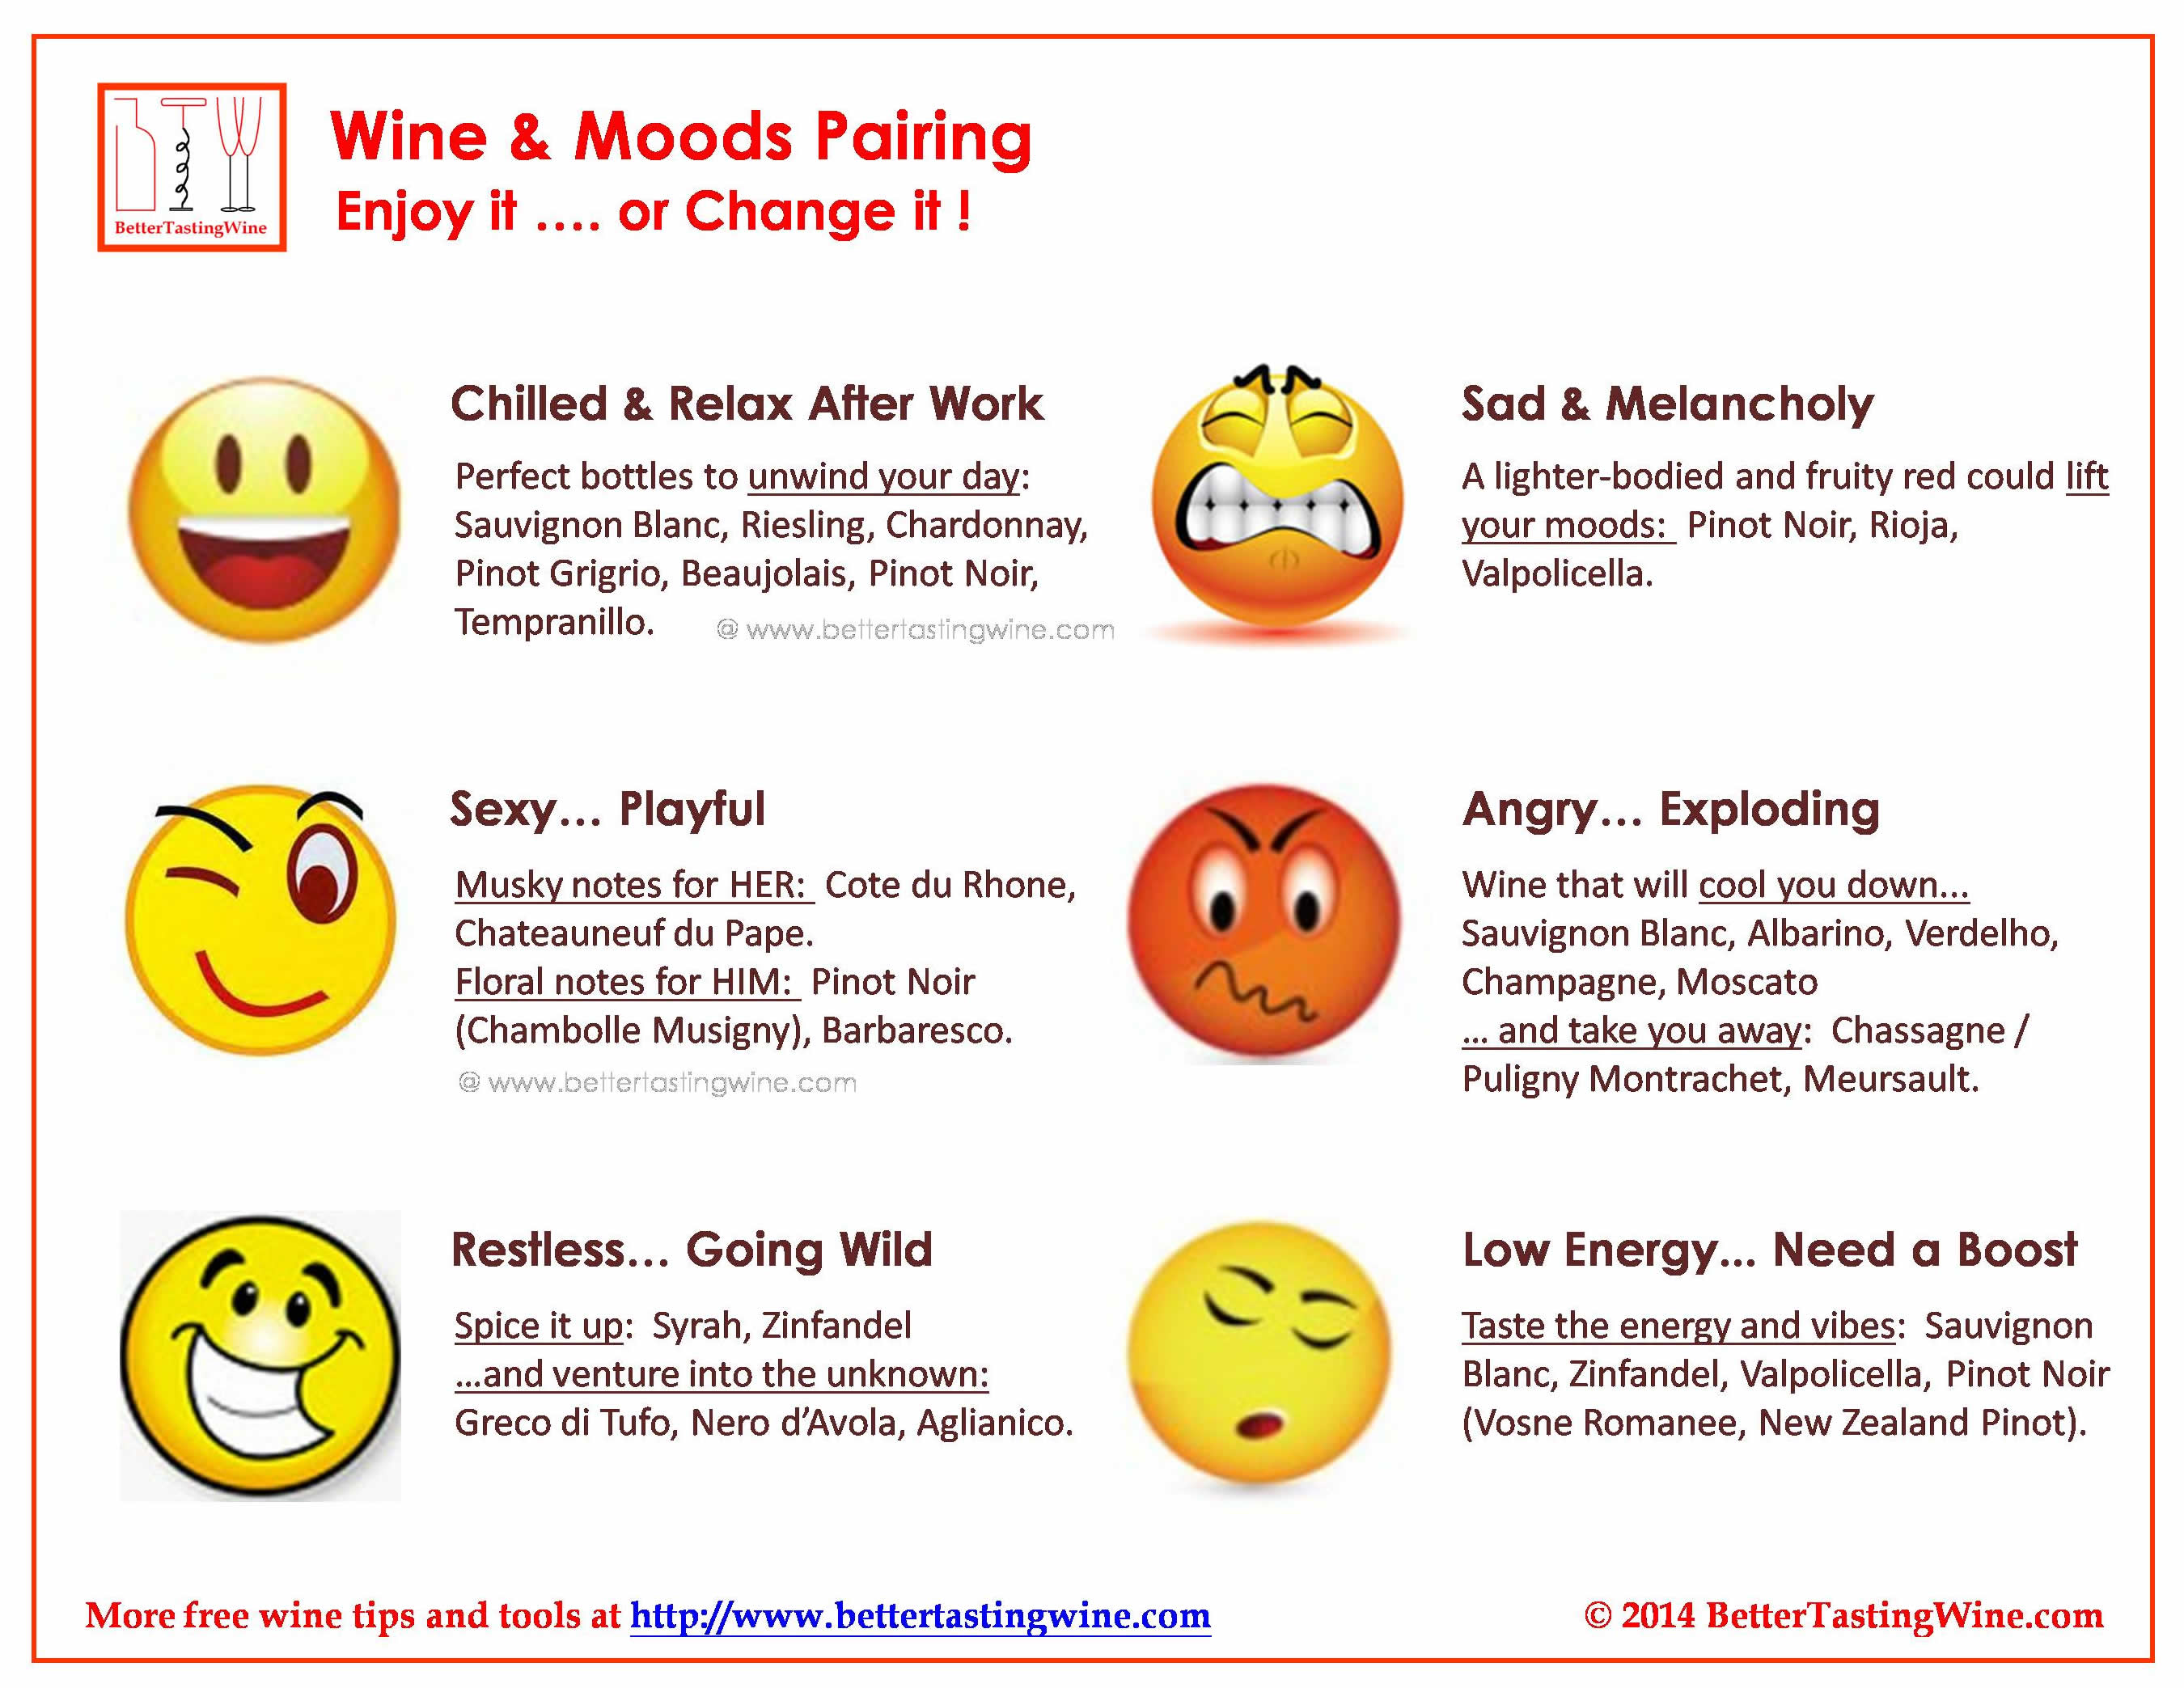 Wine and Moods Pairing